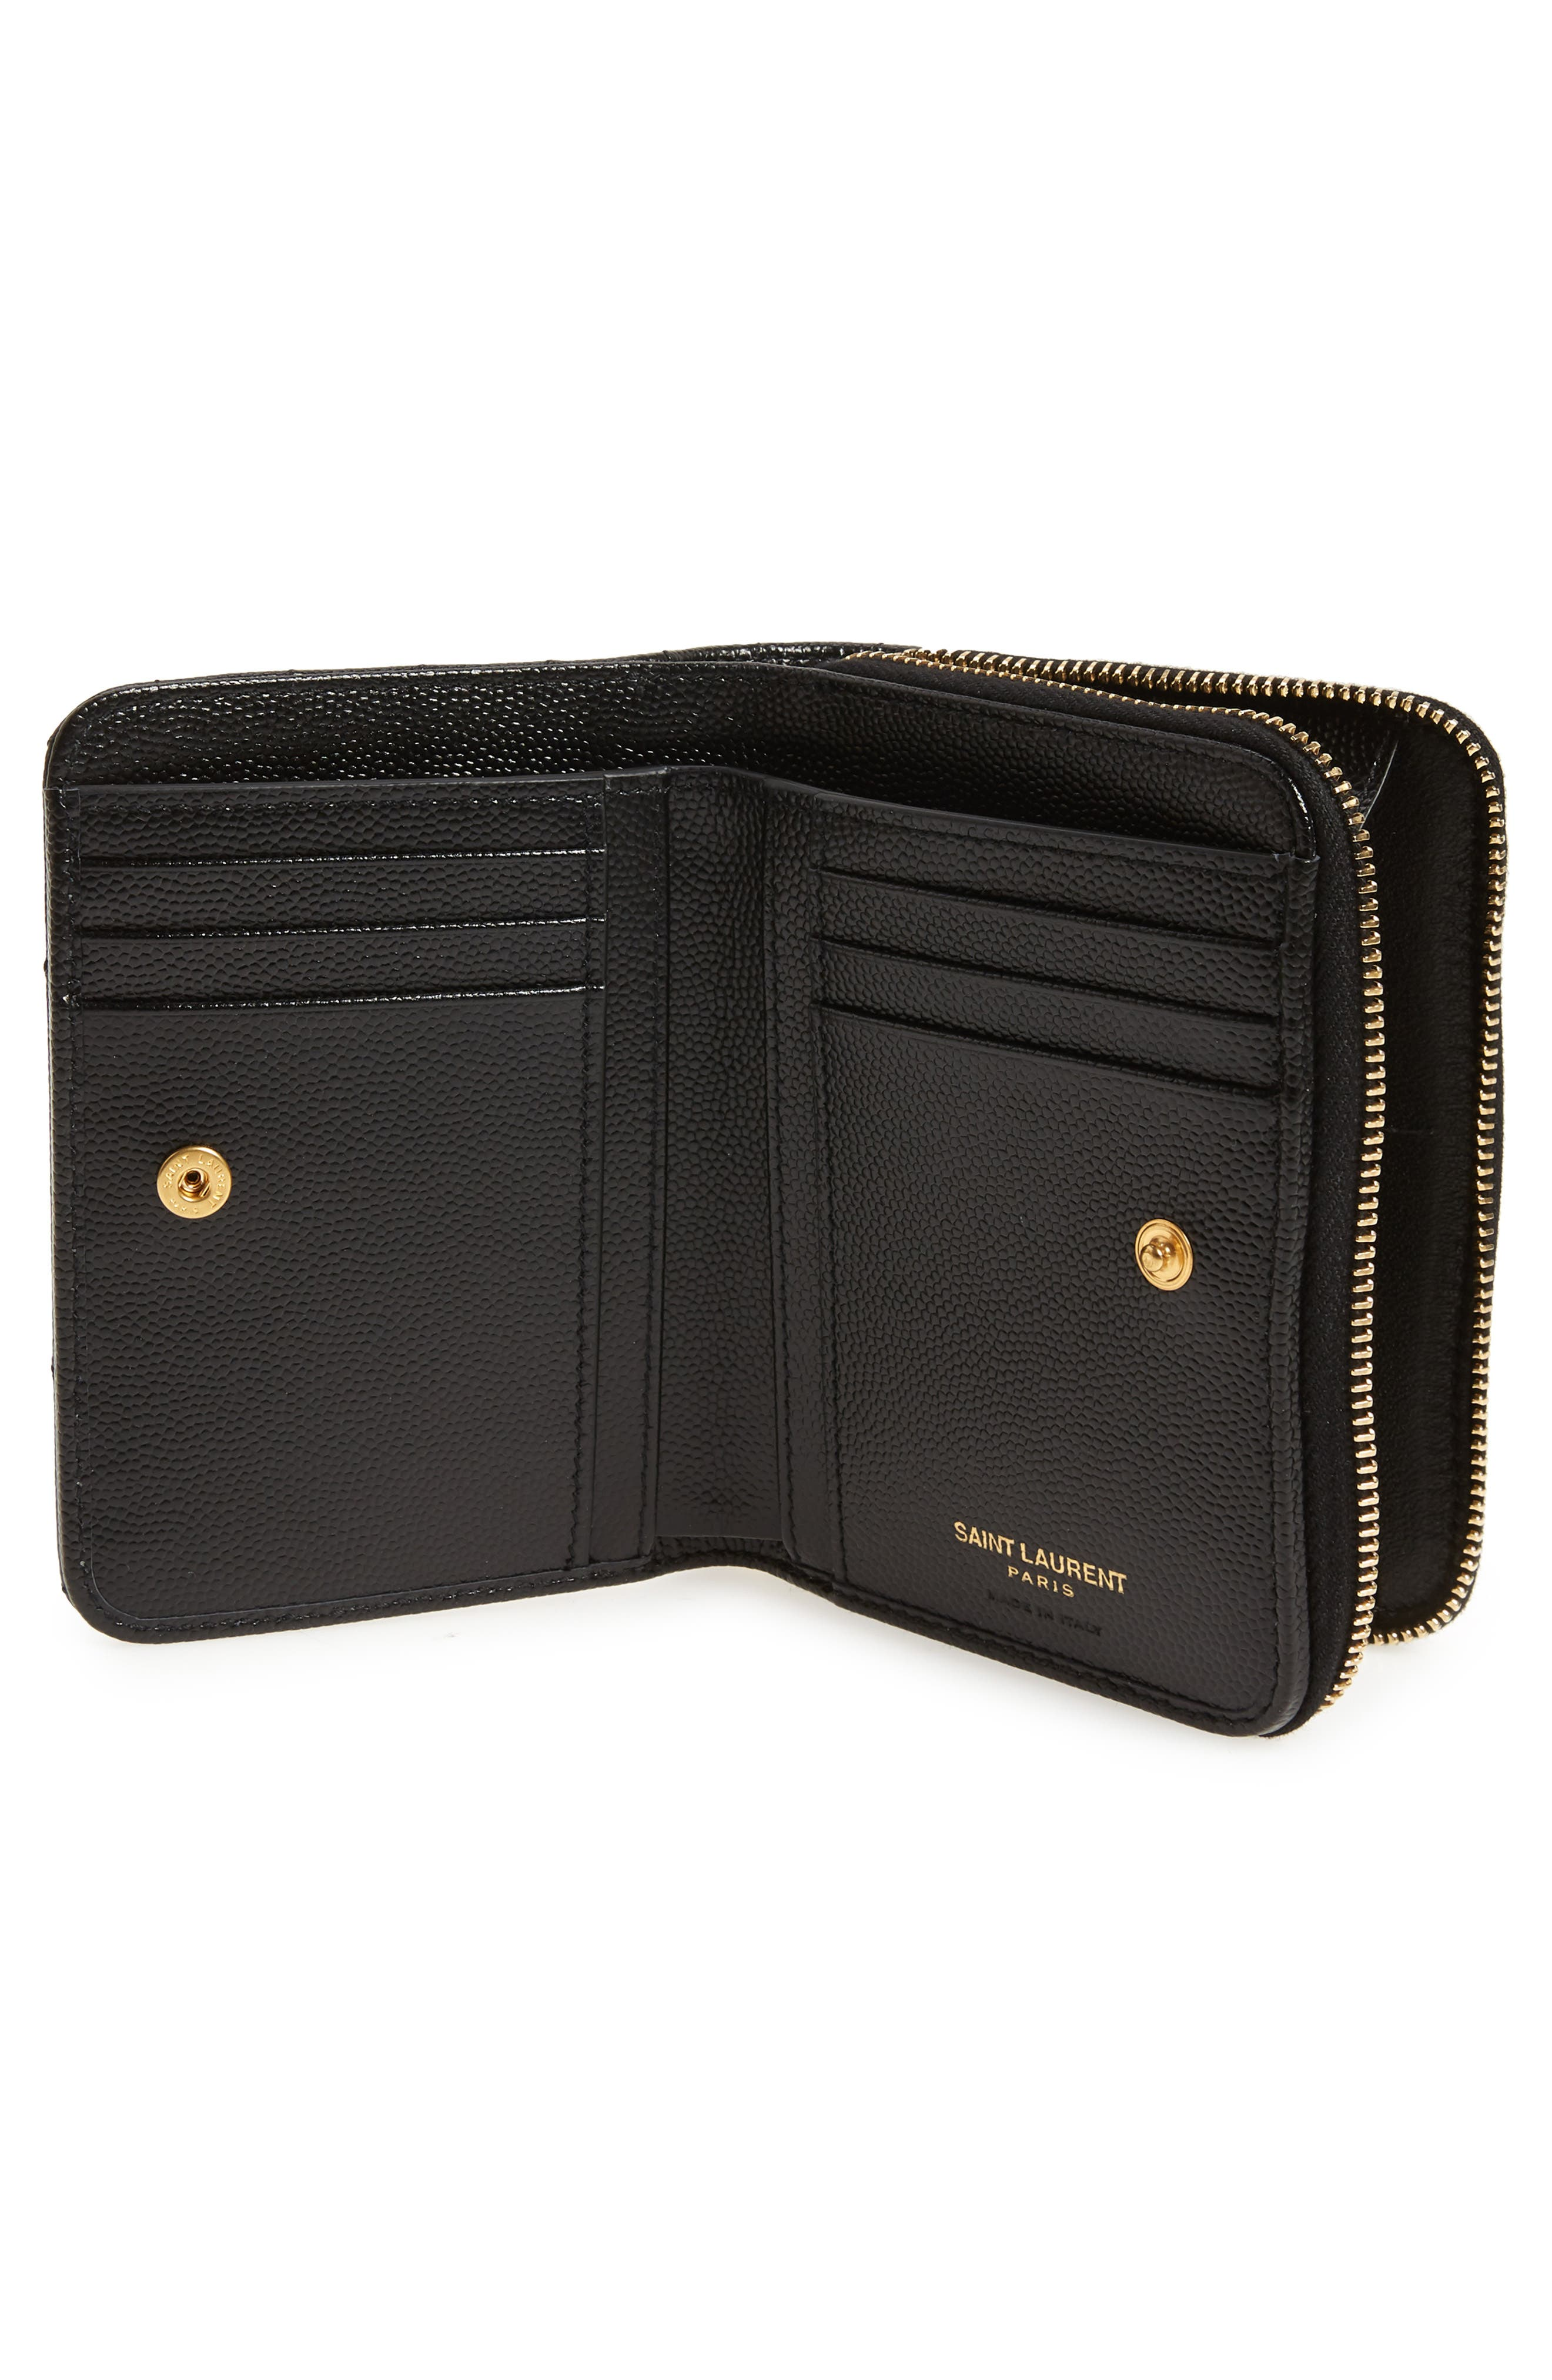 Monogramme Compact Quilted Zip Around Wallet,                             Alternate thumbnail 2, color,                             NOIR